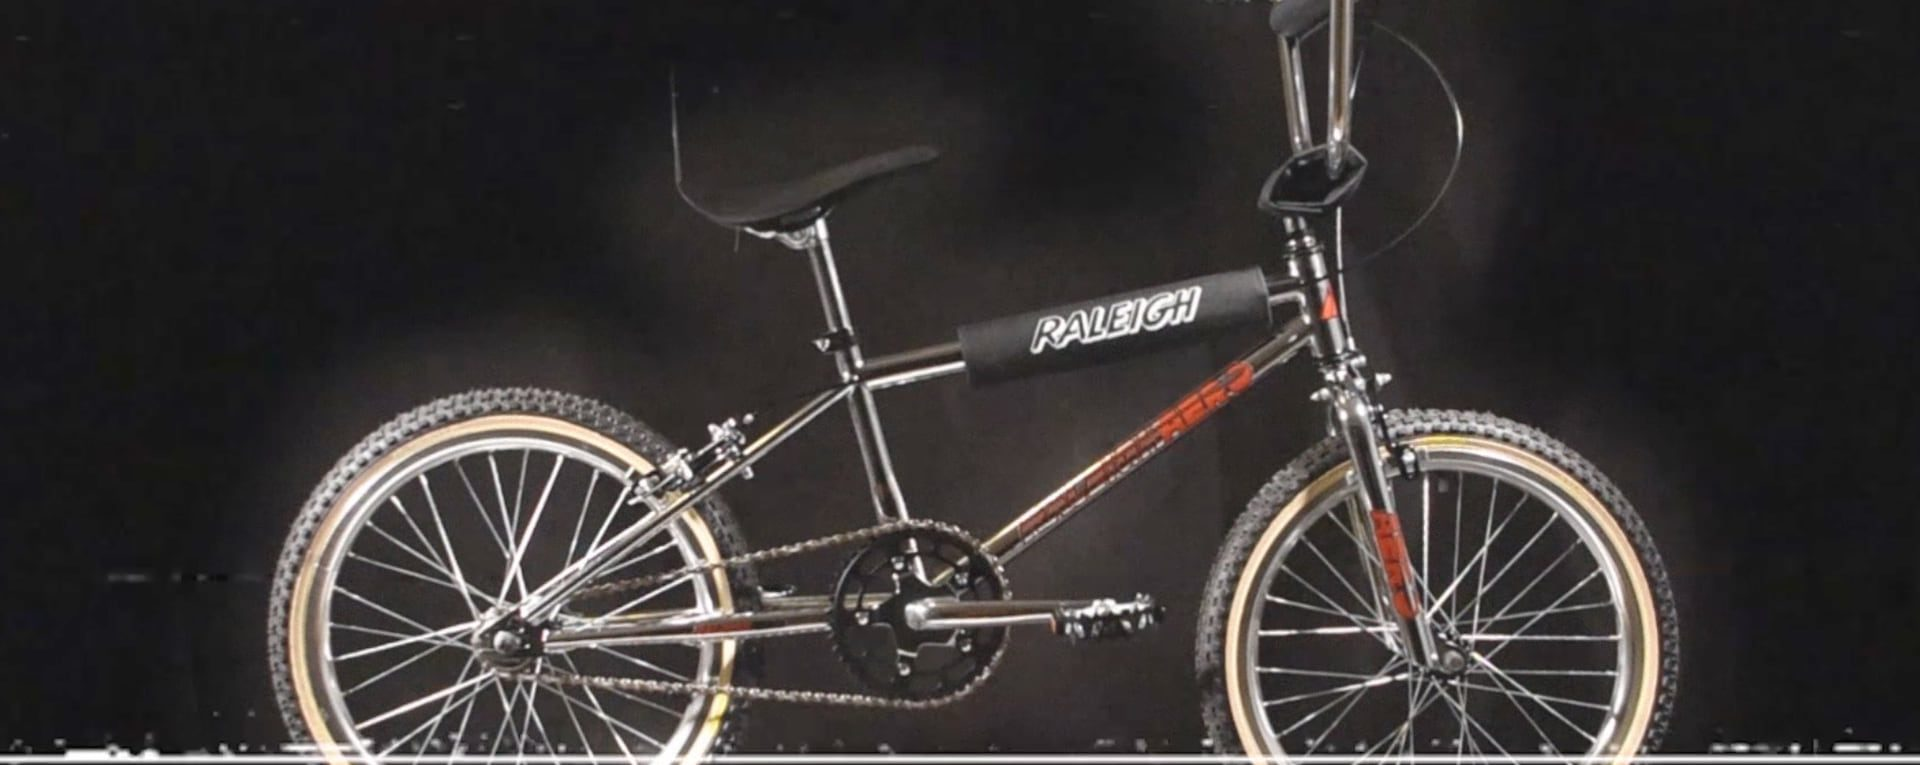 Limited Edition Raleigh Chrome Aero Pro Burner Coming